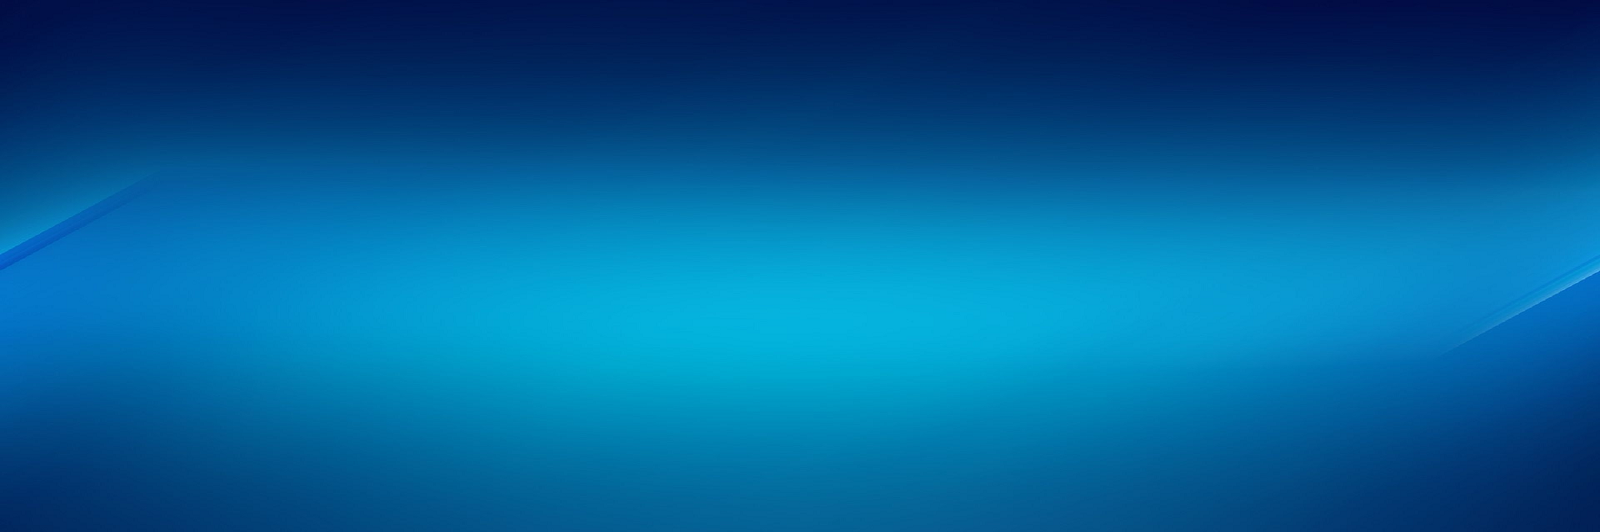 Banner_Background